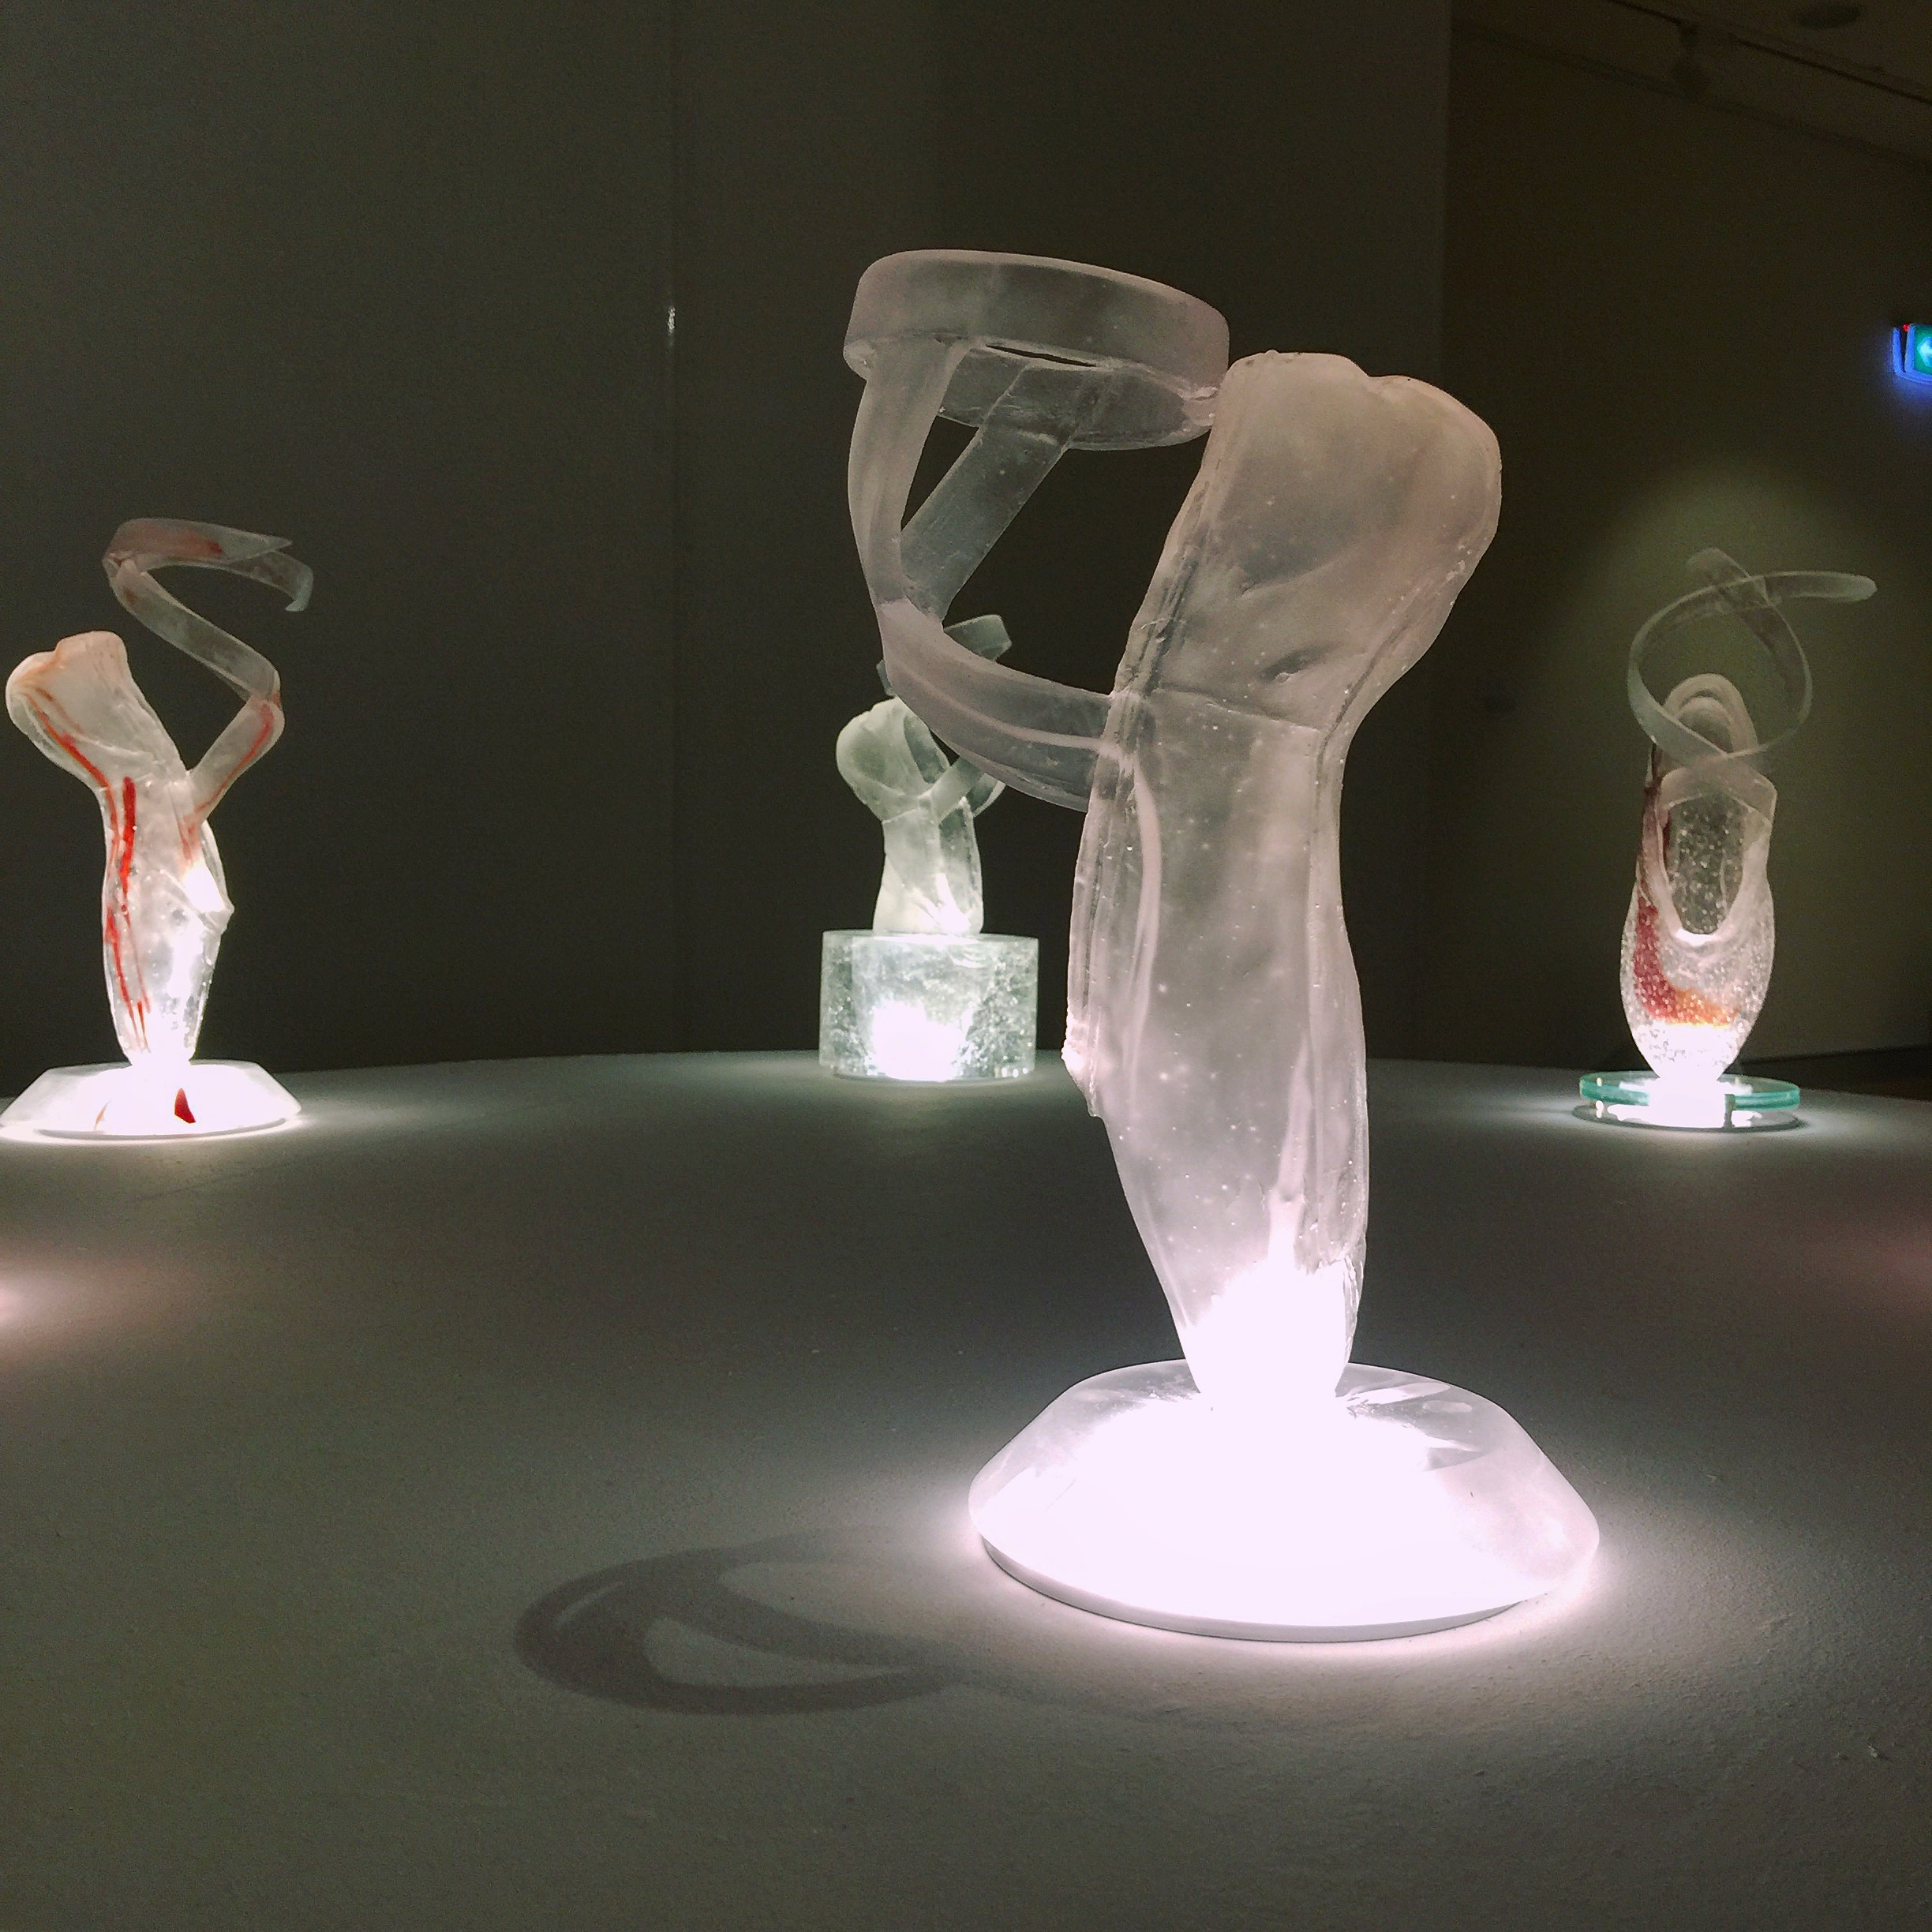 4 ballet dancers persistence glass pointe shoes sculpture installation